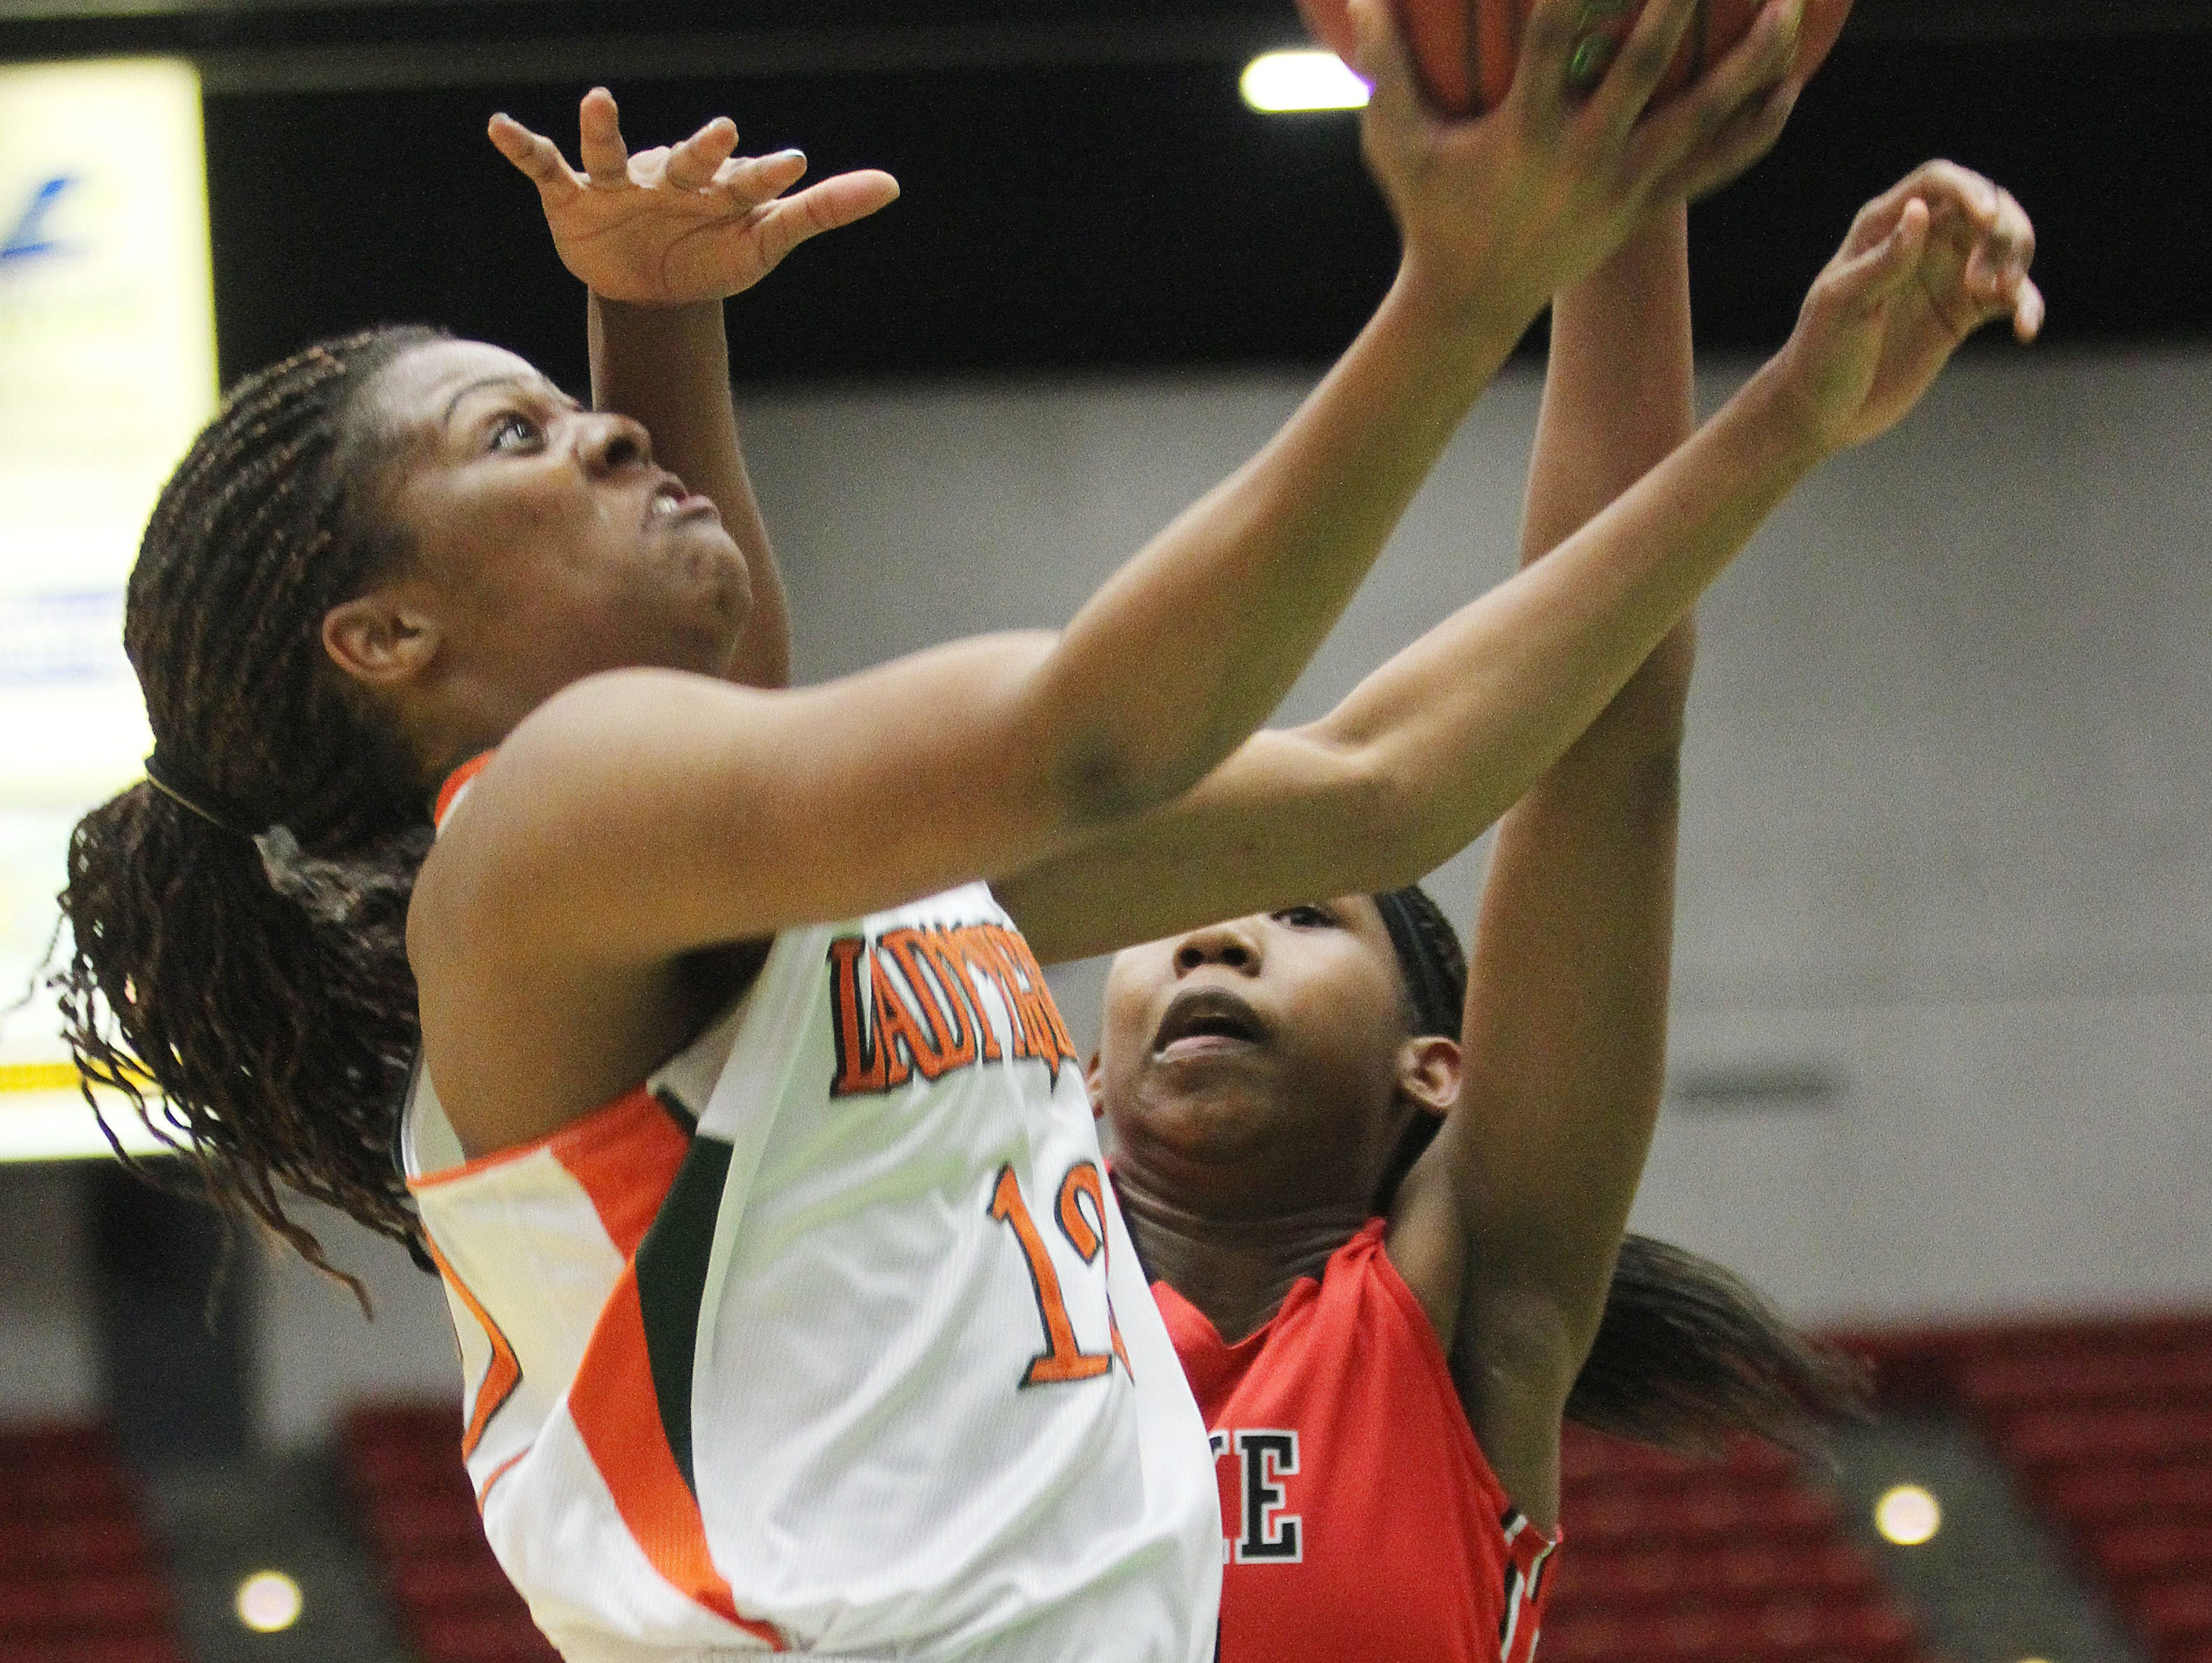 Dunbar's Kiara Desamours shoot a lay-up under the defense of Lake Highland's Koi Love during the Class 4A state championship game at the Lakeland Center.